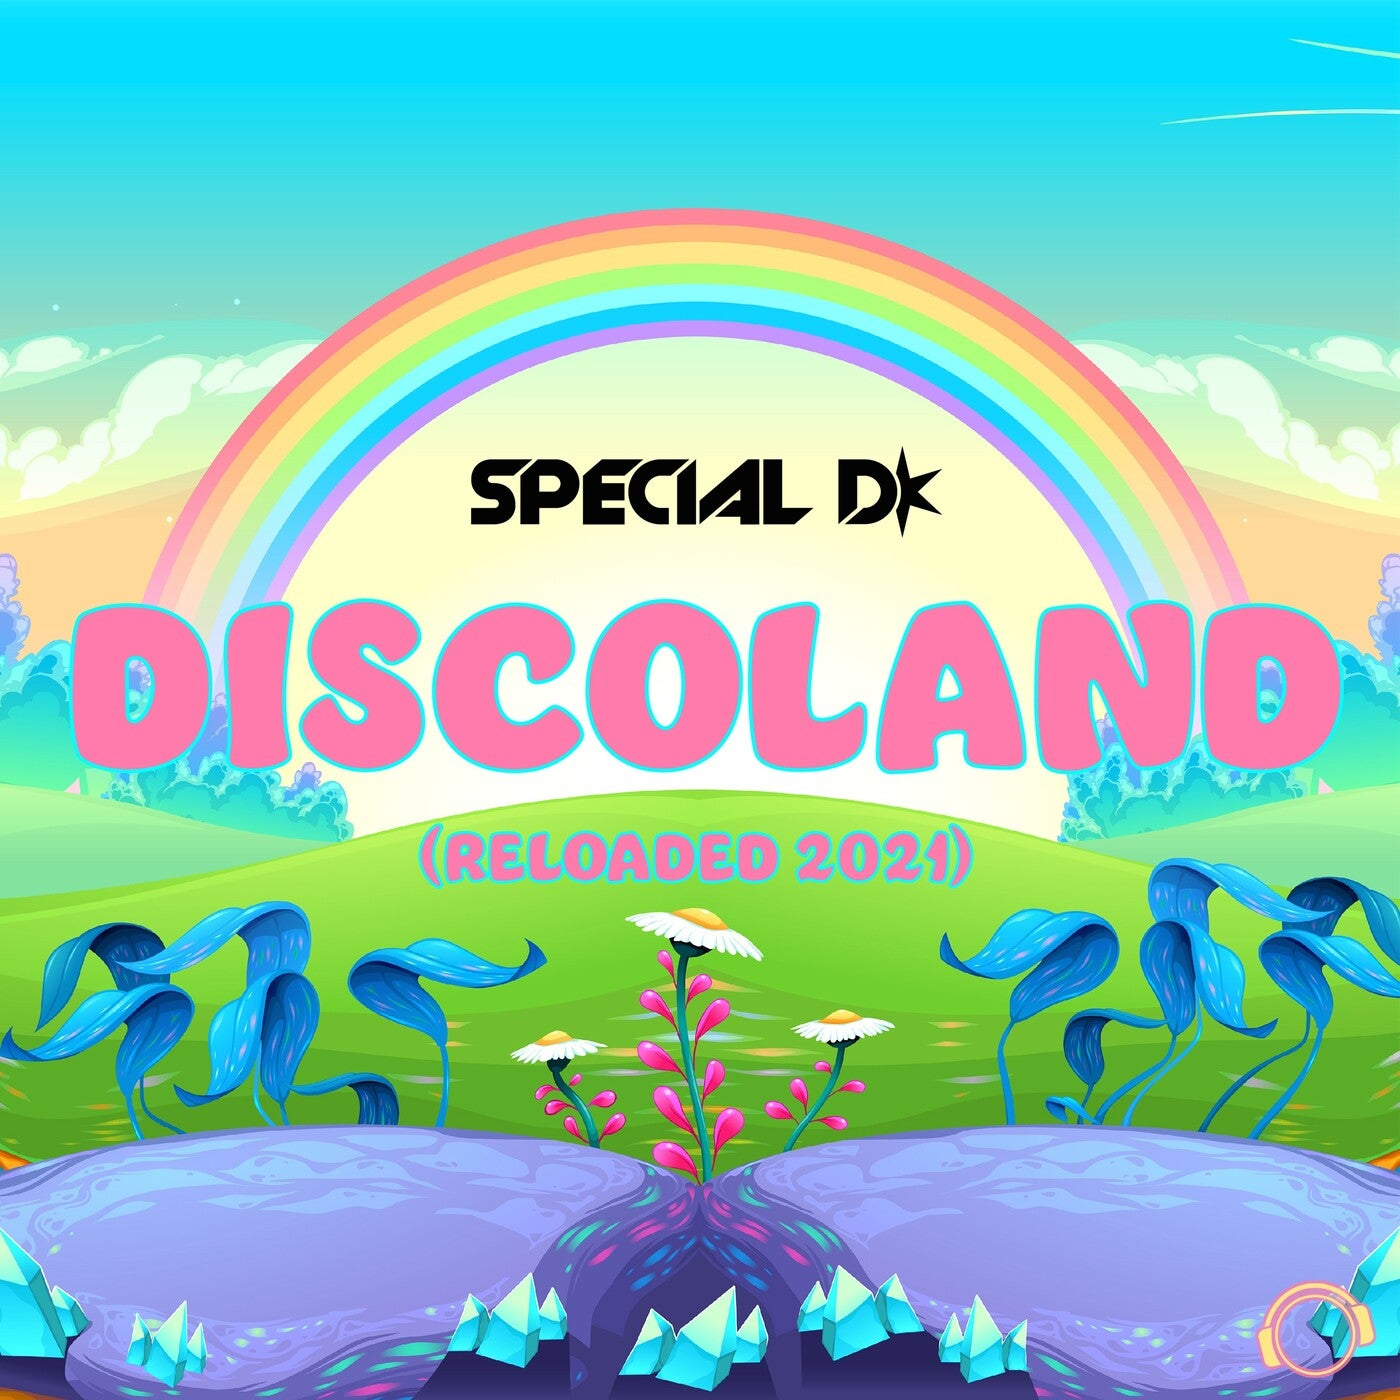 Discoland (Reloaded 2021 Mix)